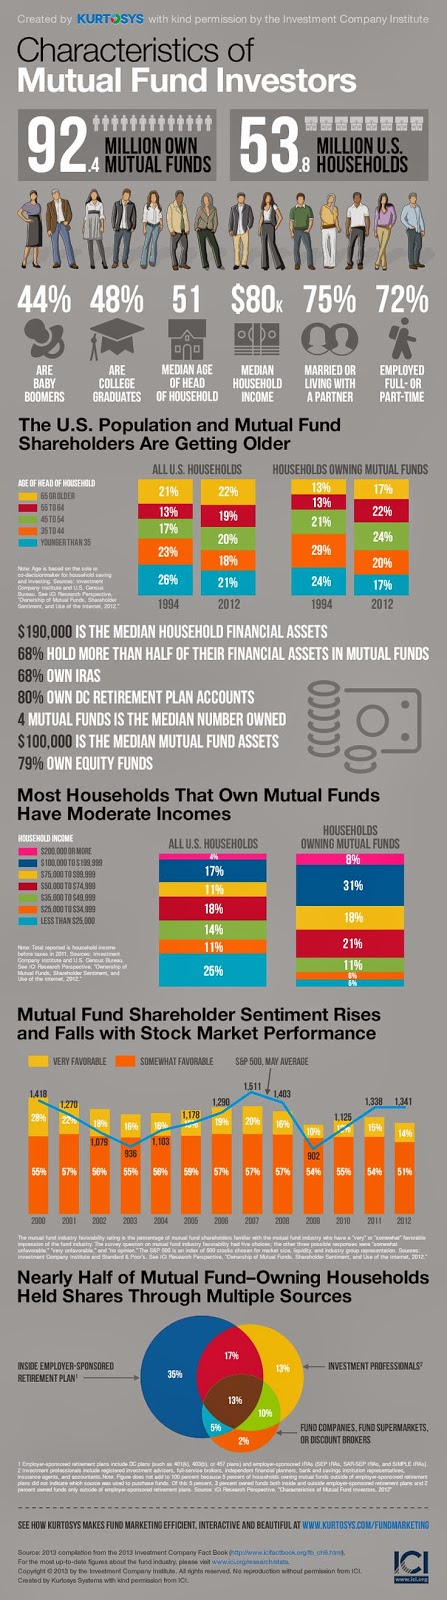 the science of targeting and marketing Mutual Funds